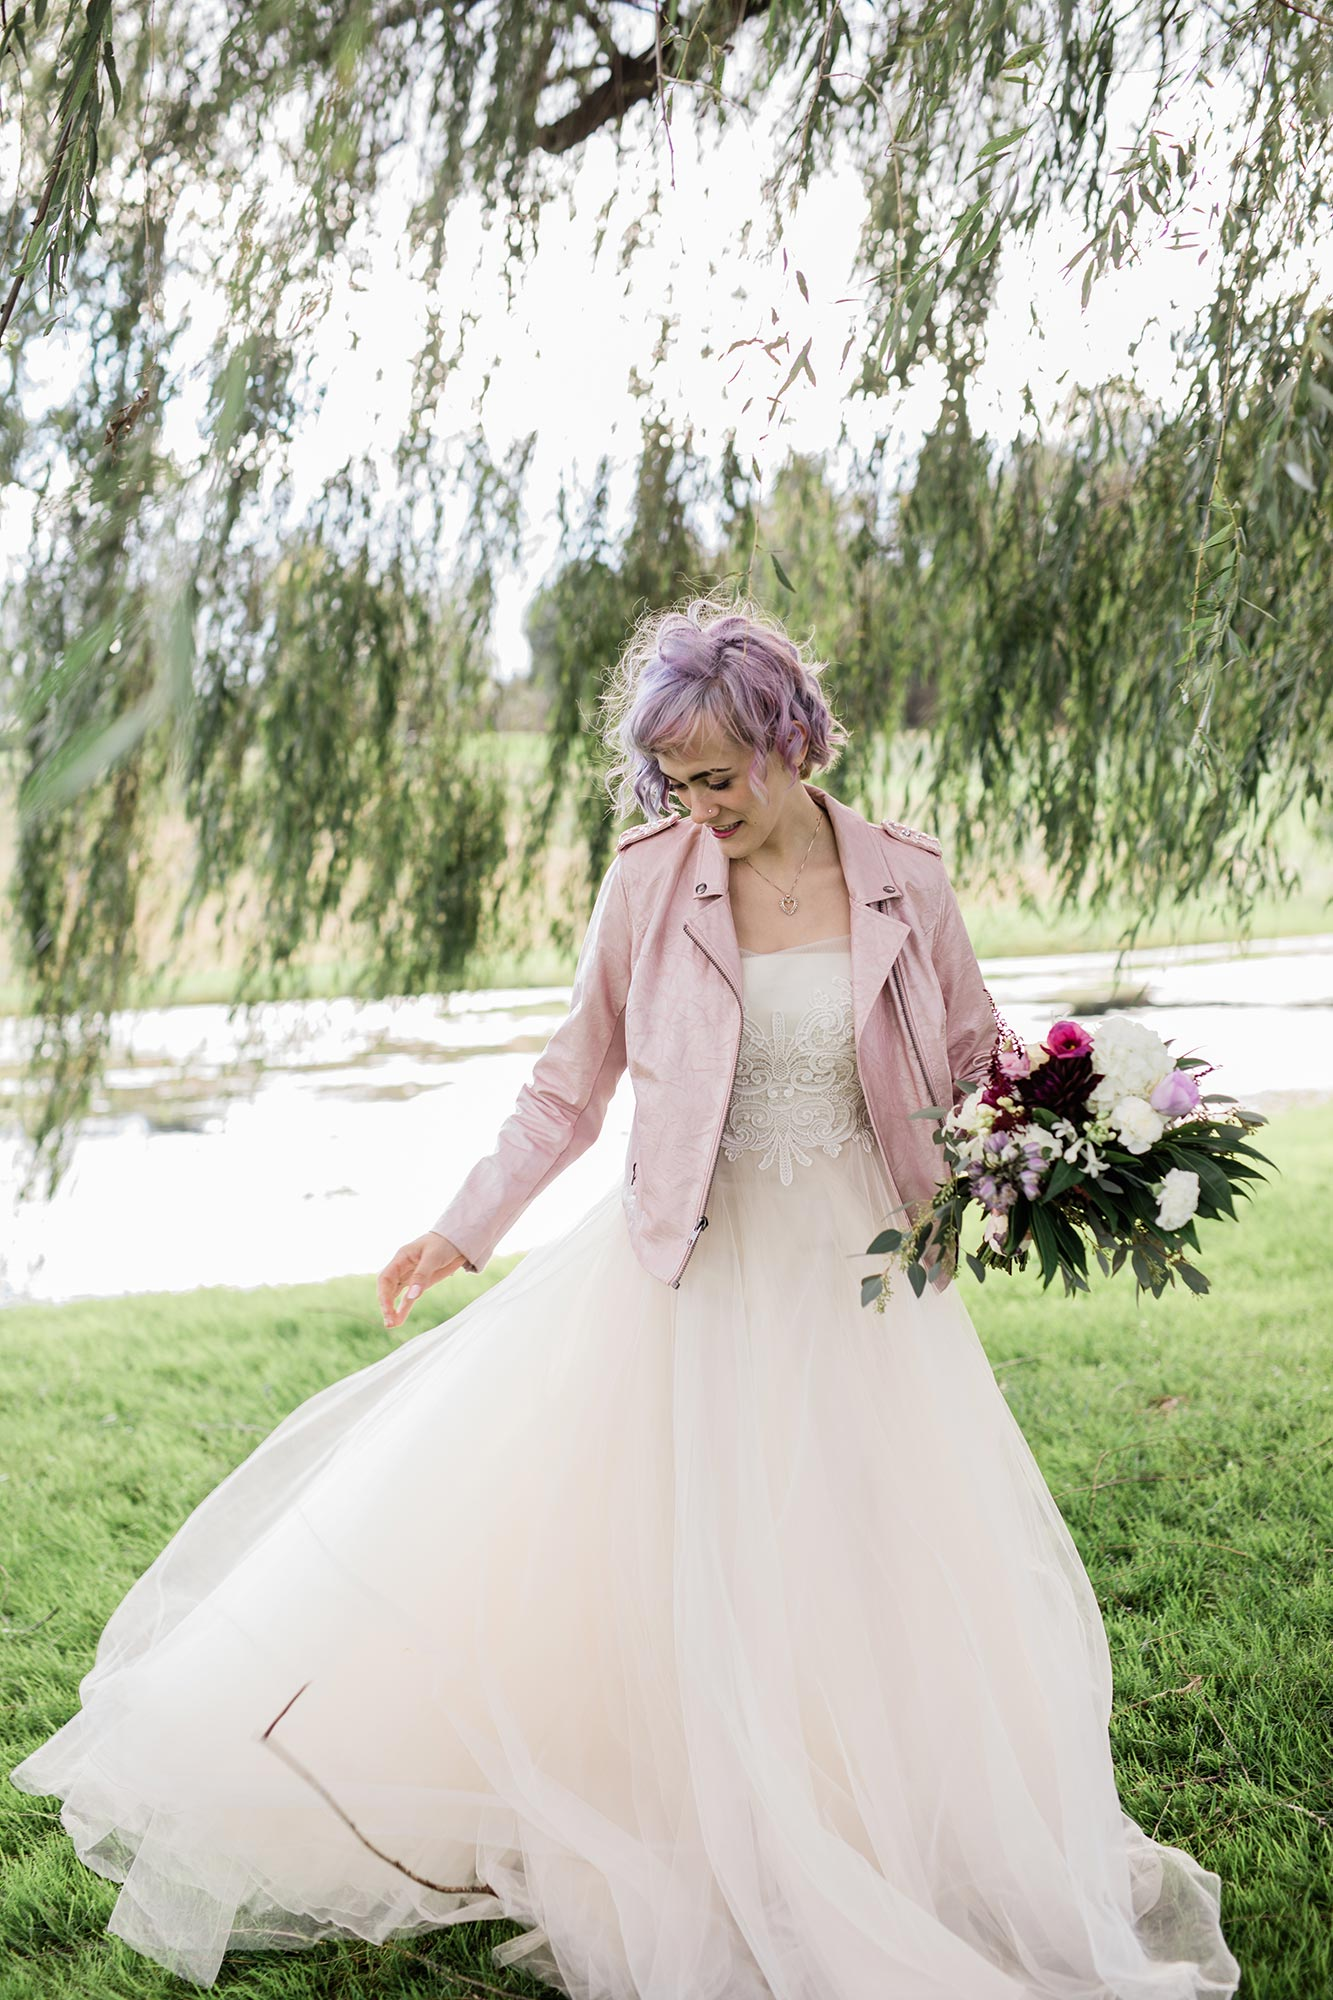 Chic Queer Wedding in West Chester Pennsylvania showing Sara in wedding dress and pink leather jacket with bouquet Judson Rappaport Photography